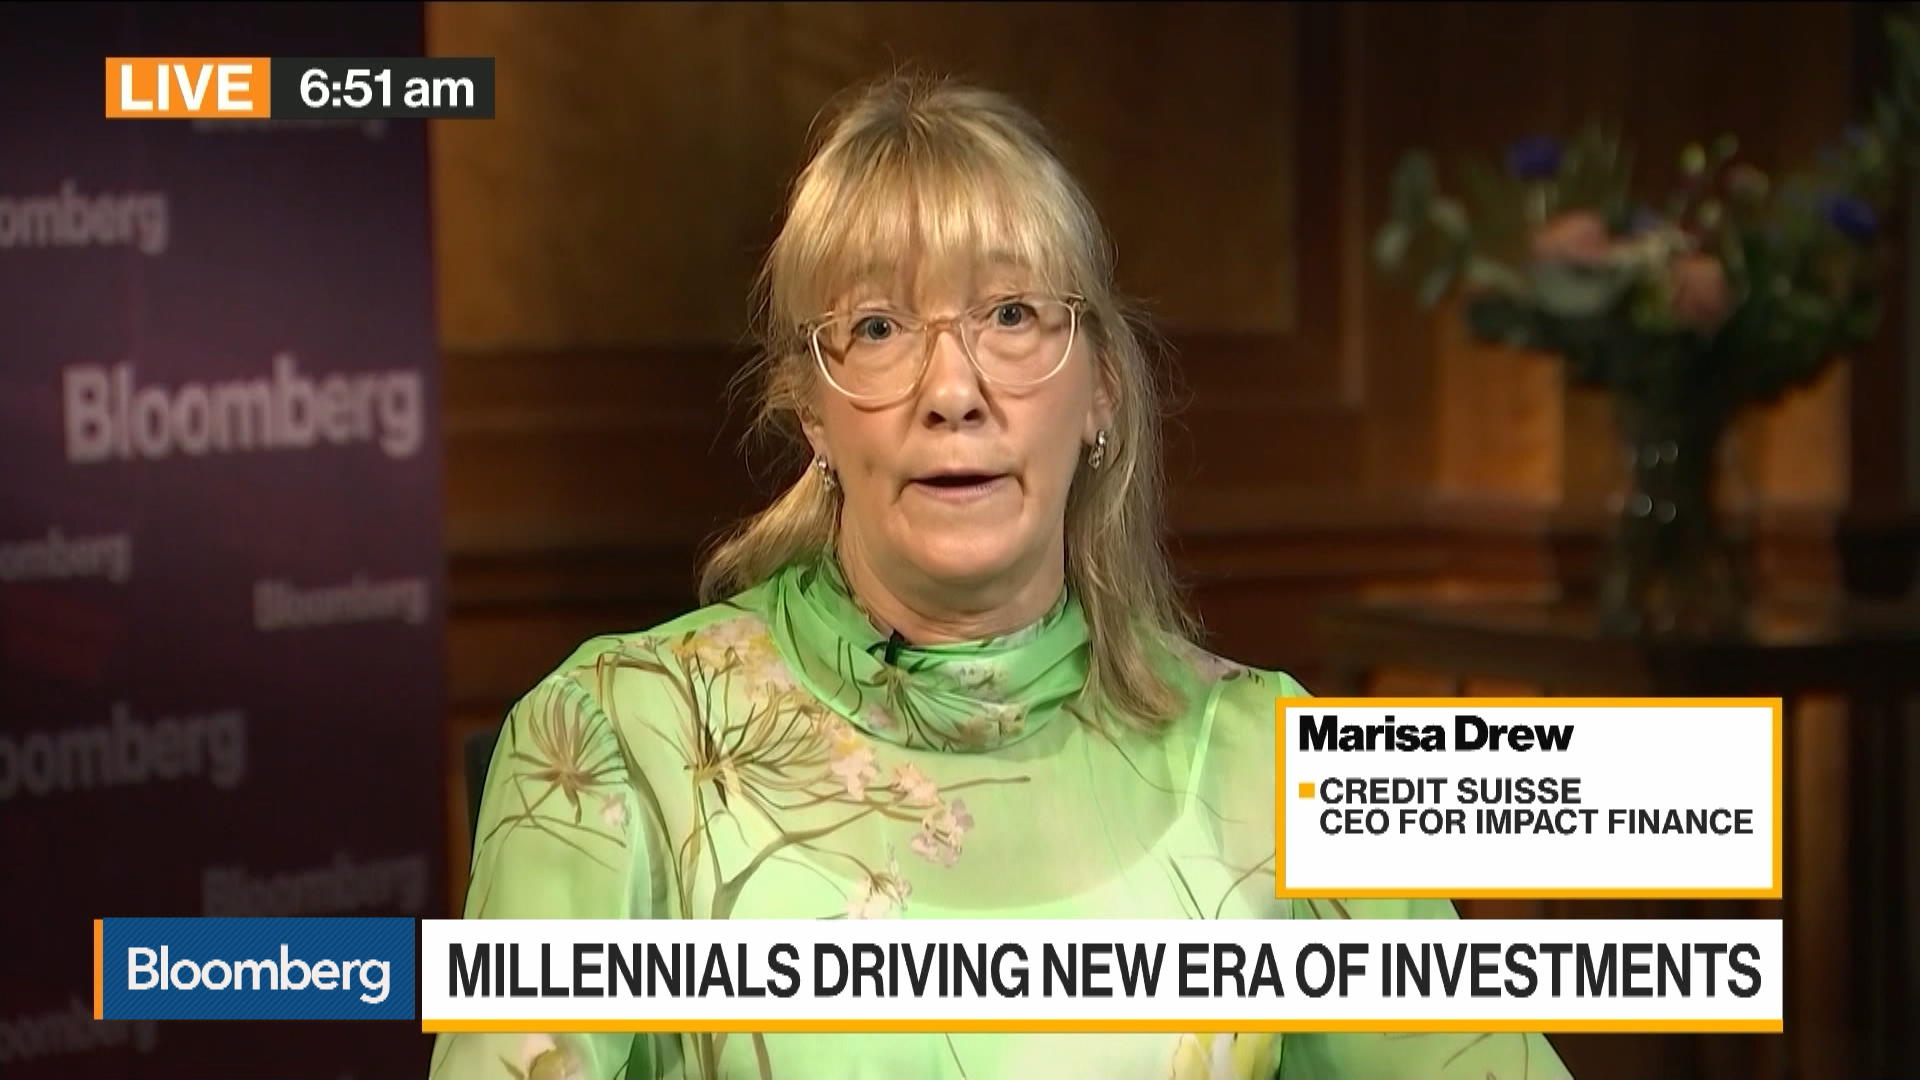 Millennials, Regulation Are Driving Impact Investing: Credit Suisse